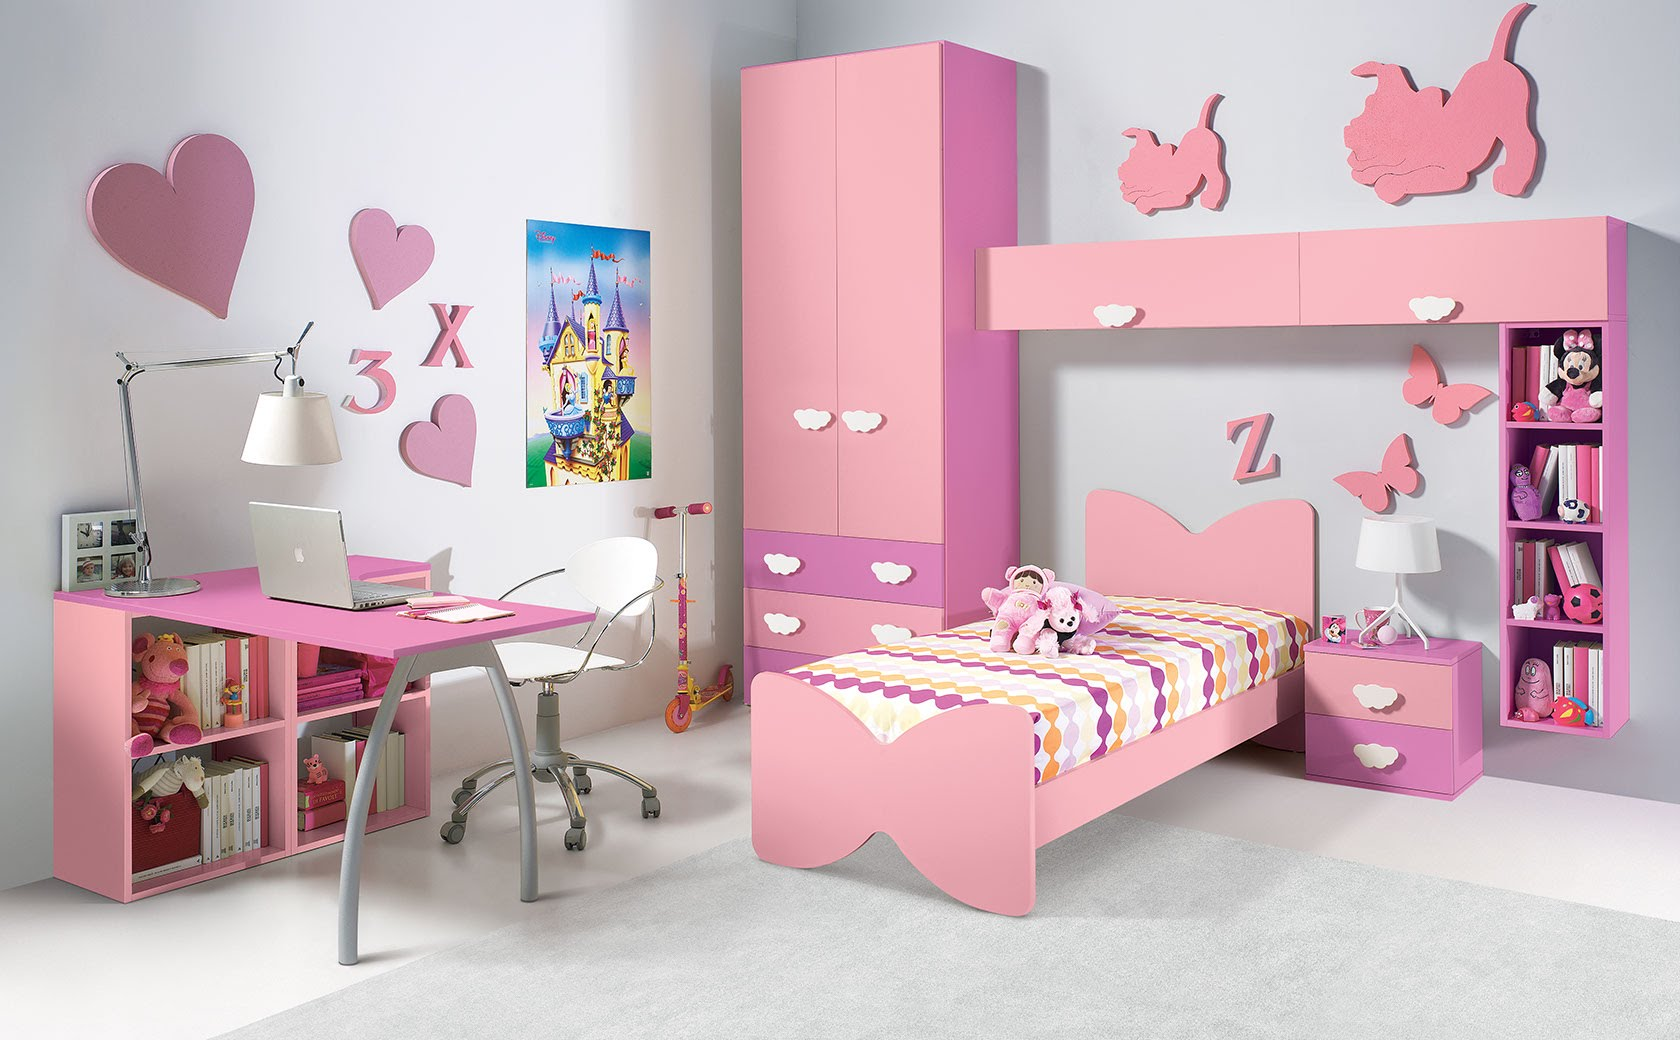 Top 10 kids furniture stores in singapore